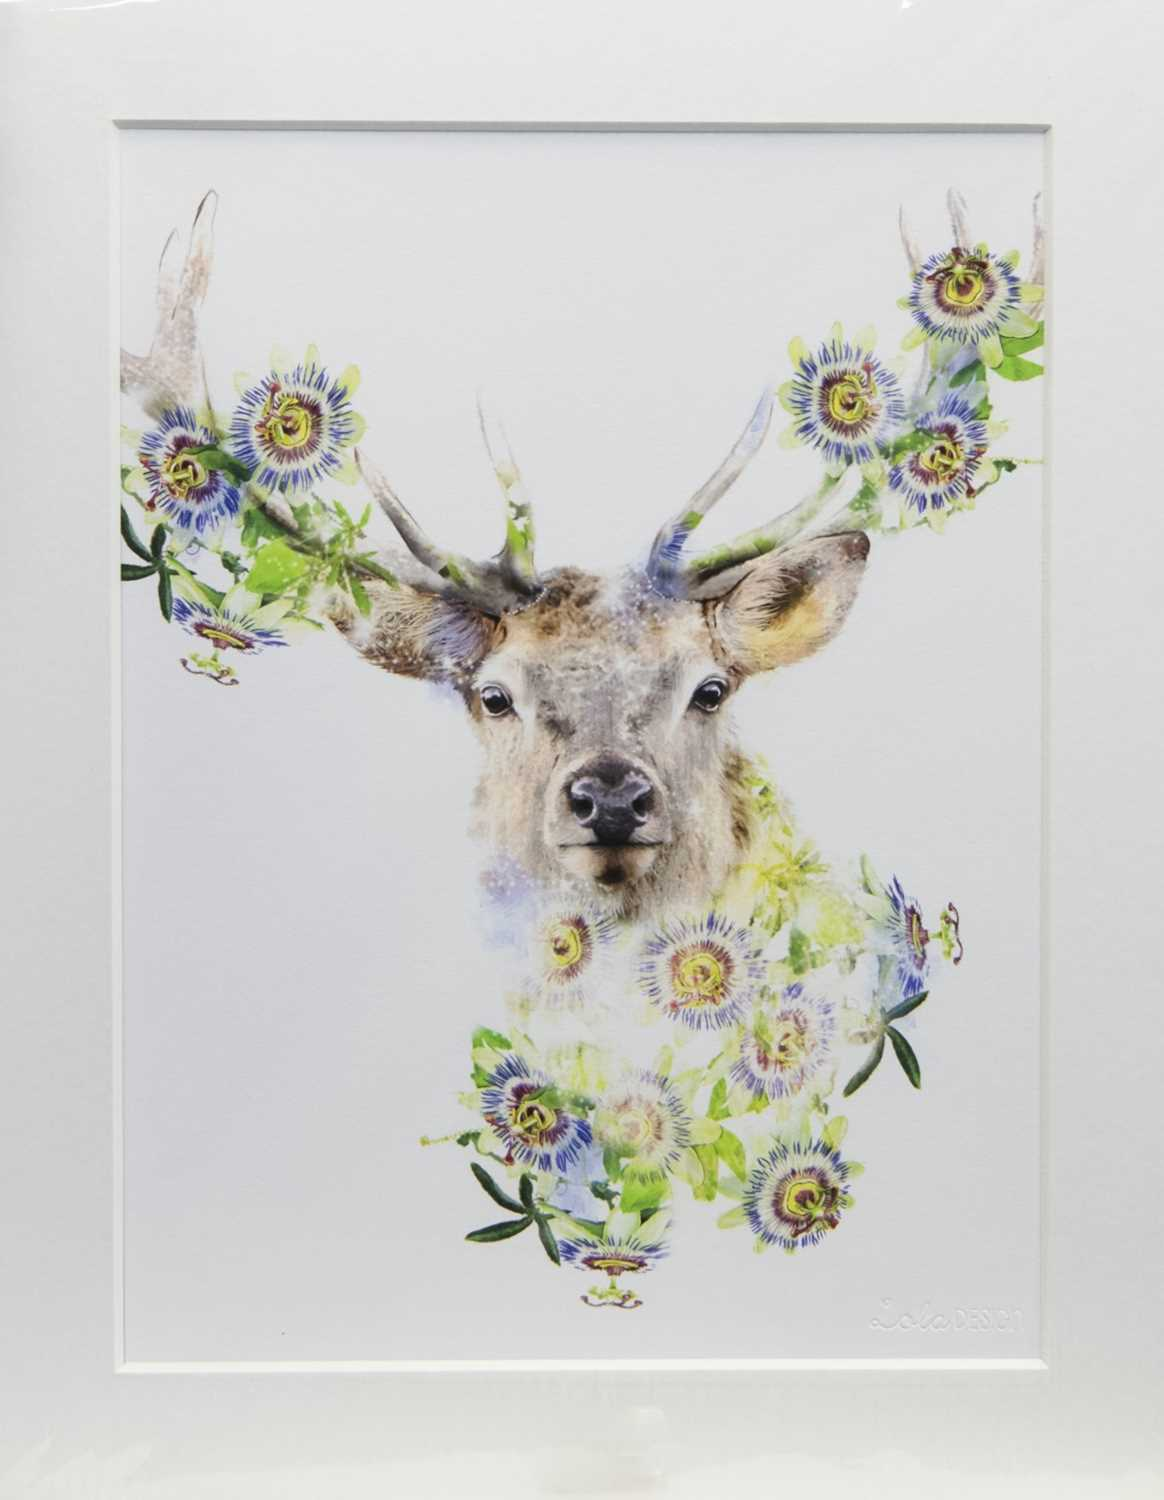 Lot 104 - STAG, A PRINT BY LOLA DESIGN